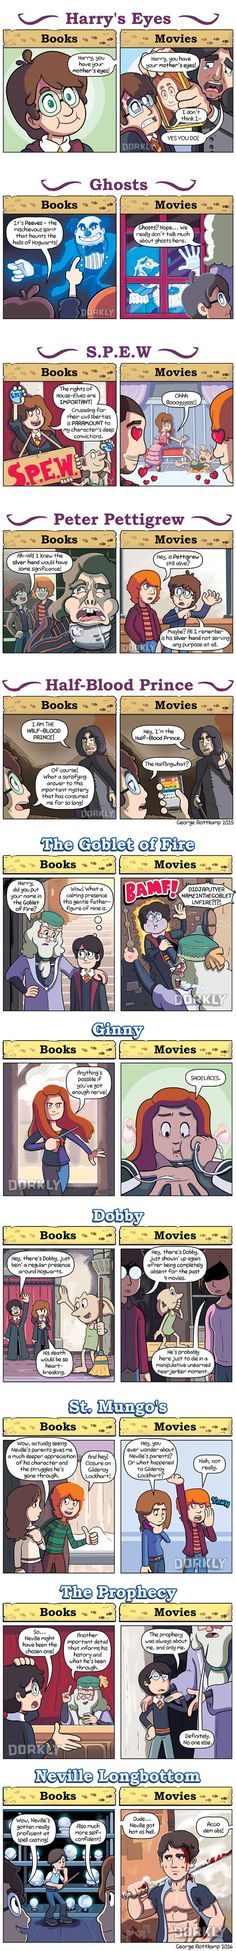 11 Ways Harry Potter Movies Are Different From The Books - Hogwarts Harry Potter Jokes, Harry Potter Fandom, Harry Potter World, Harry Potter Sirius, Harry Potter Comics, Always Harry Potter, Books Vs Movies, Movies Quotes, Funny Harry Potter